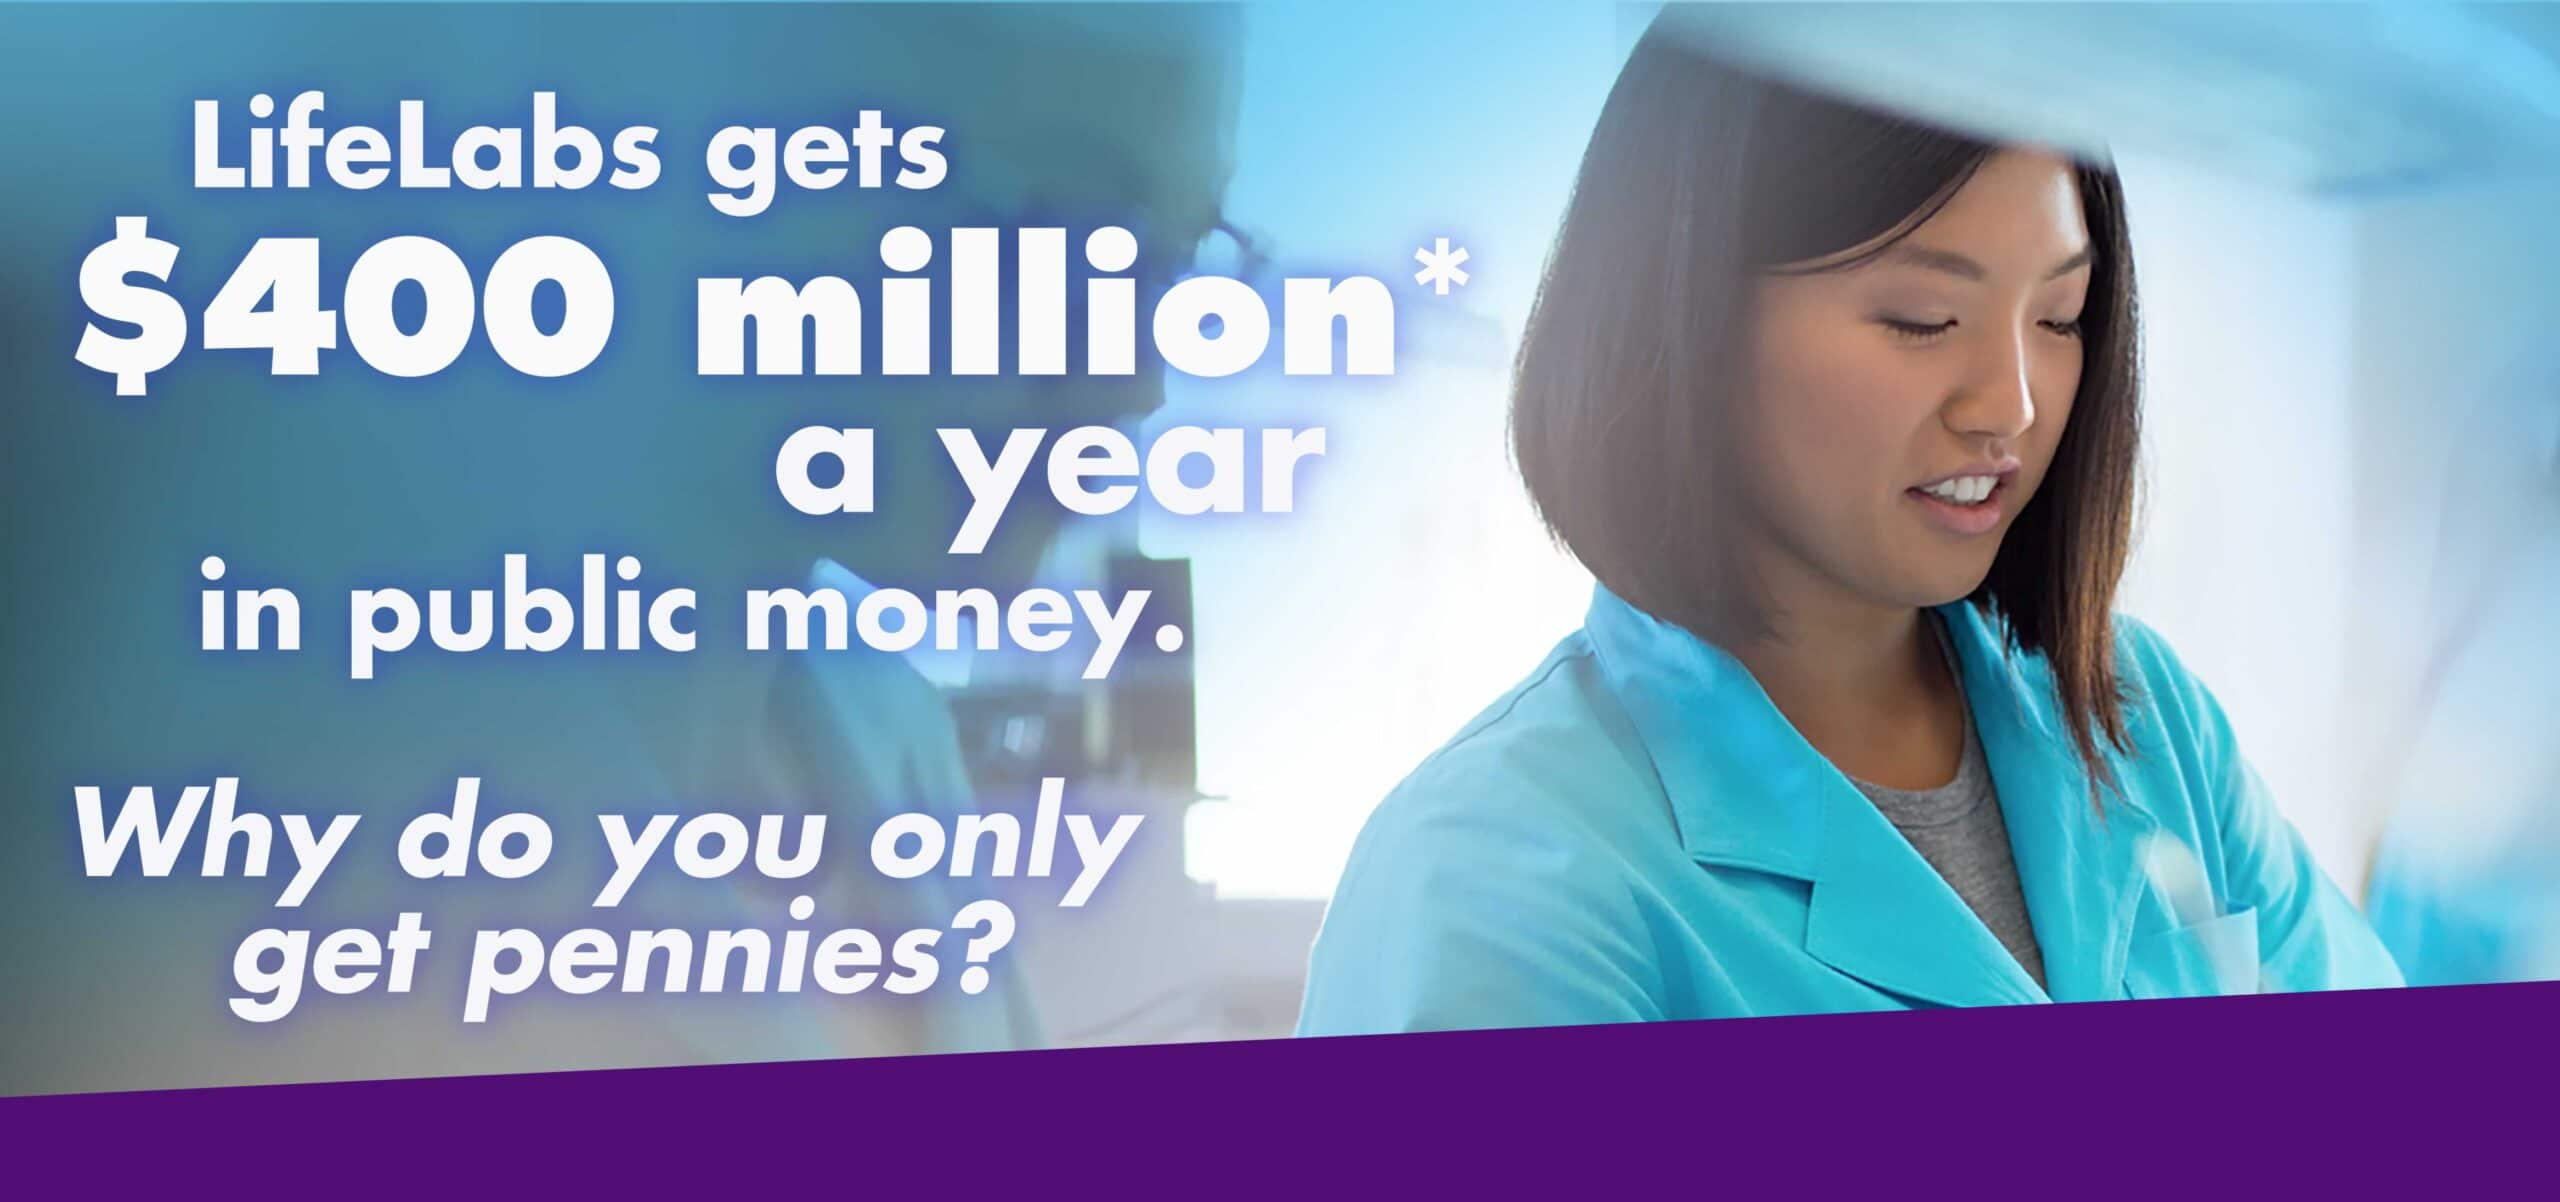 Life Labs gets $400 million a year in public money. Why do you only get pennies?